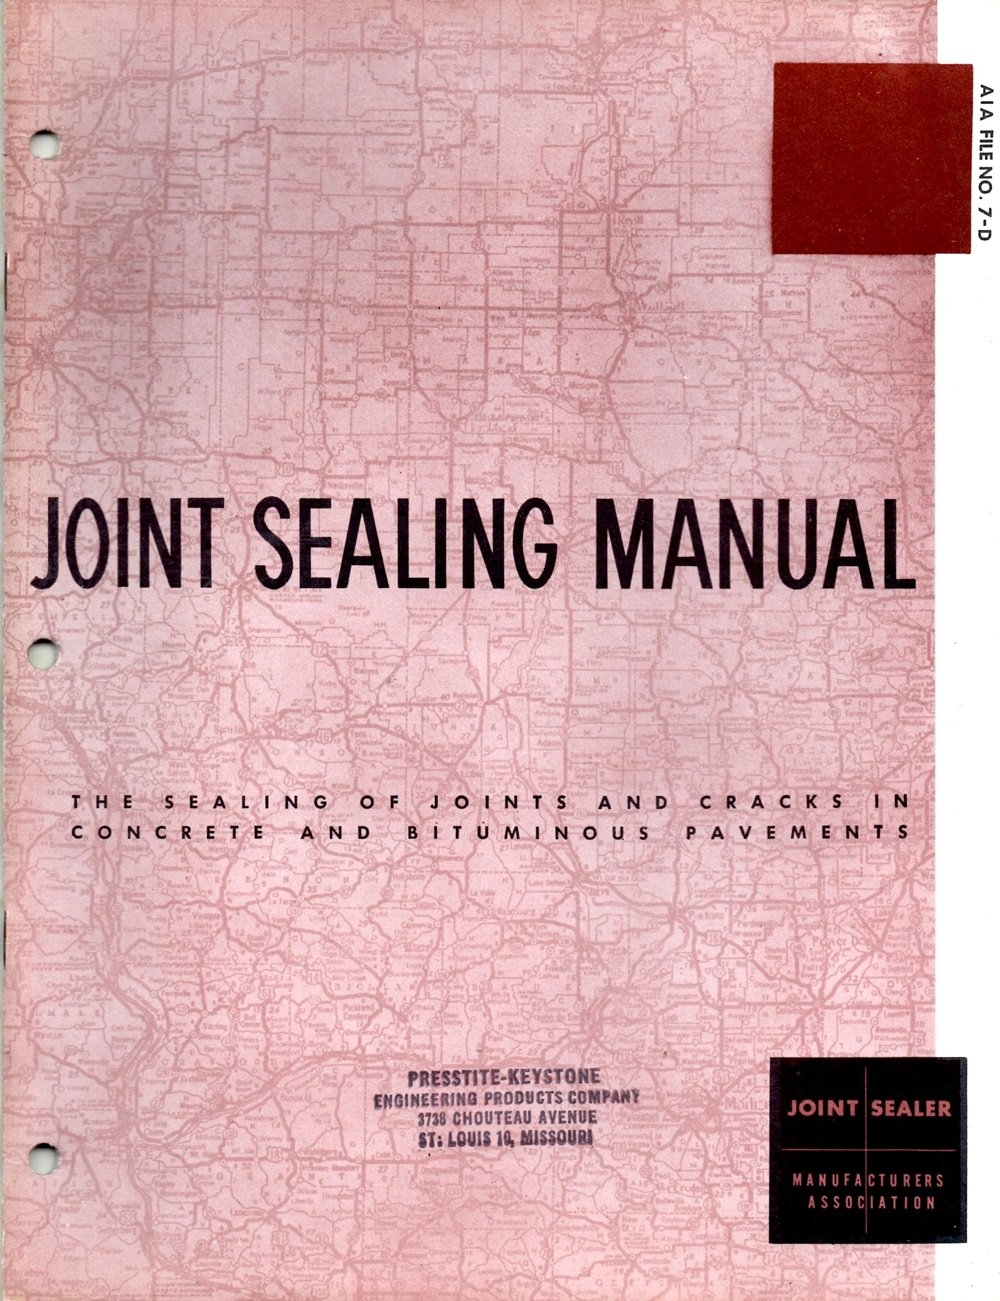 Joint Sealing Manual The Sealing of Joints and Cracks in